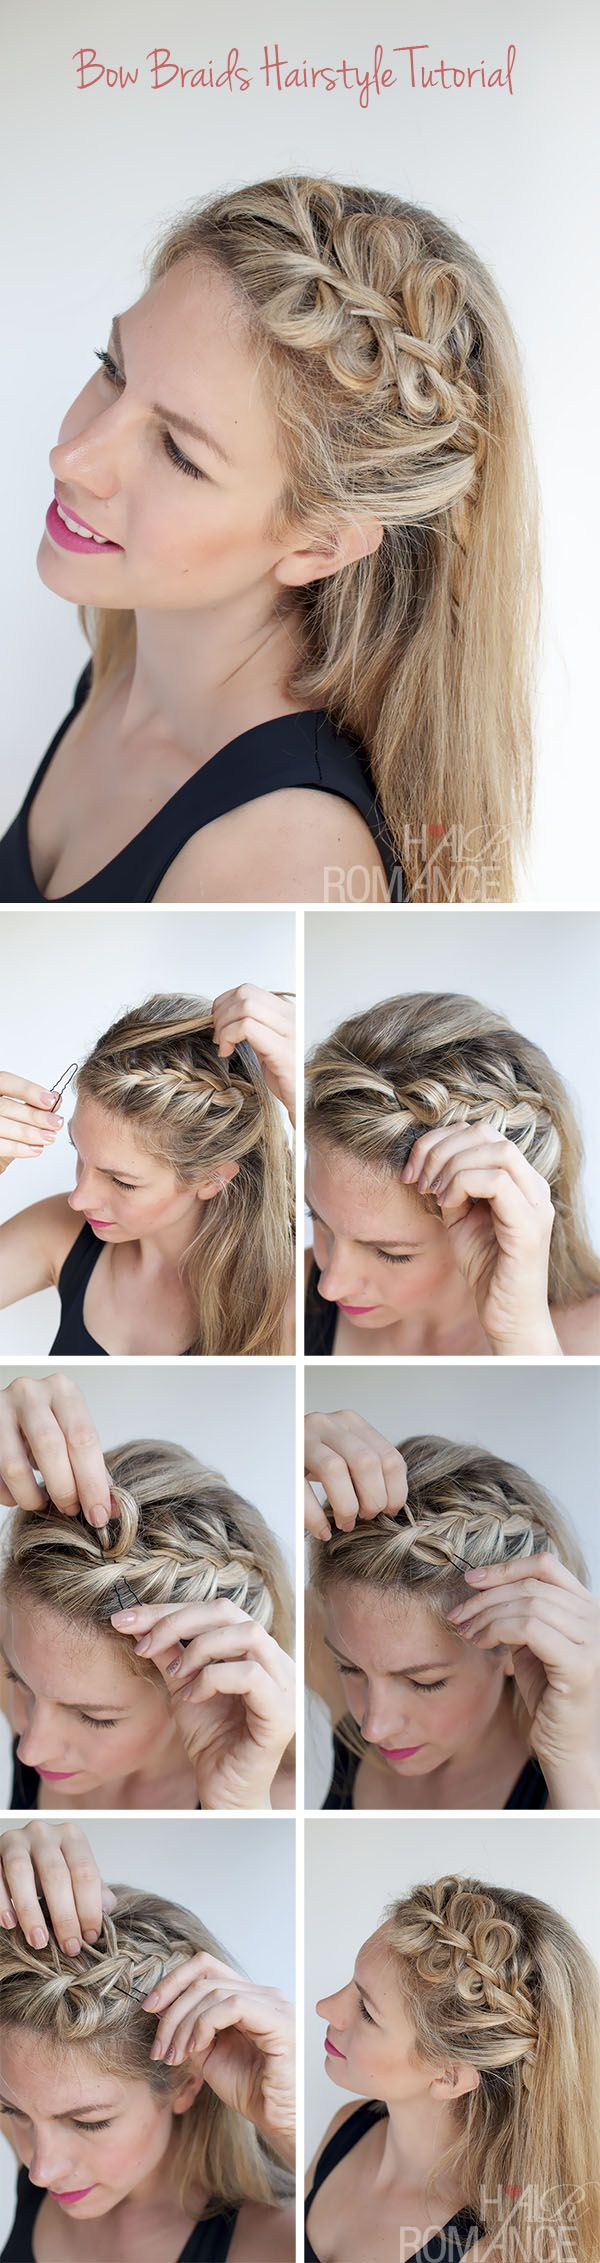 best 25+ hair bow hairstyles ideas on pinterest | bow hairstyles